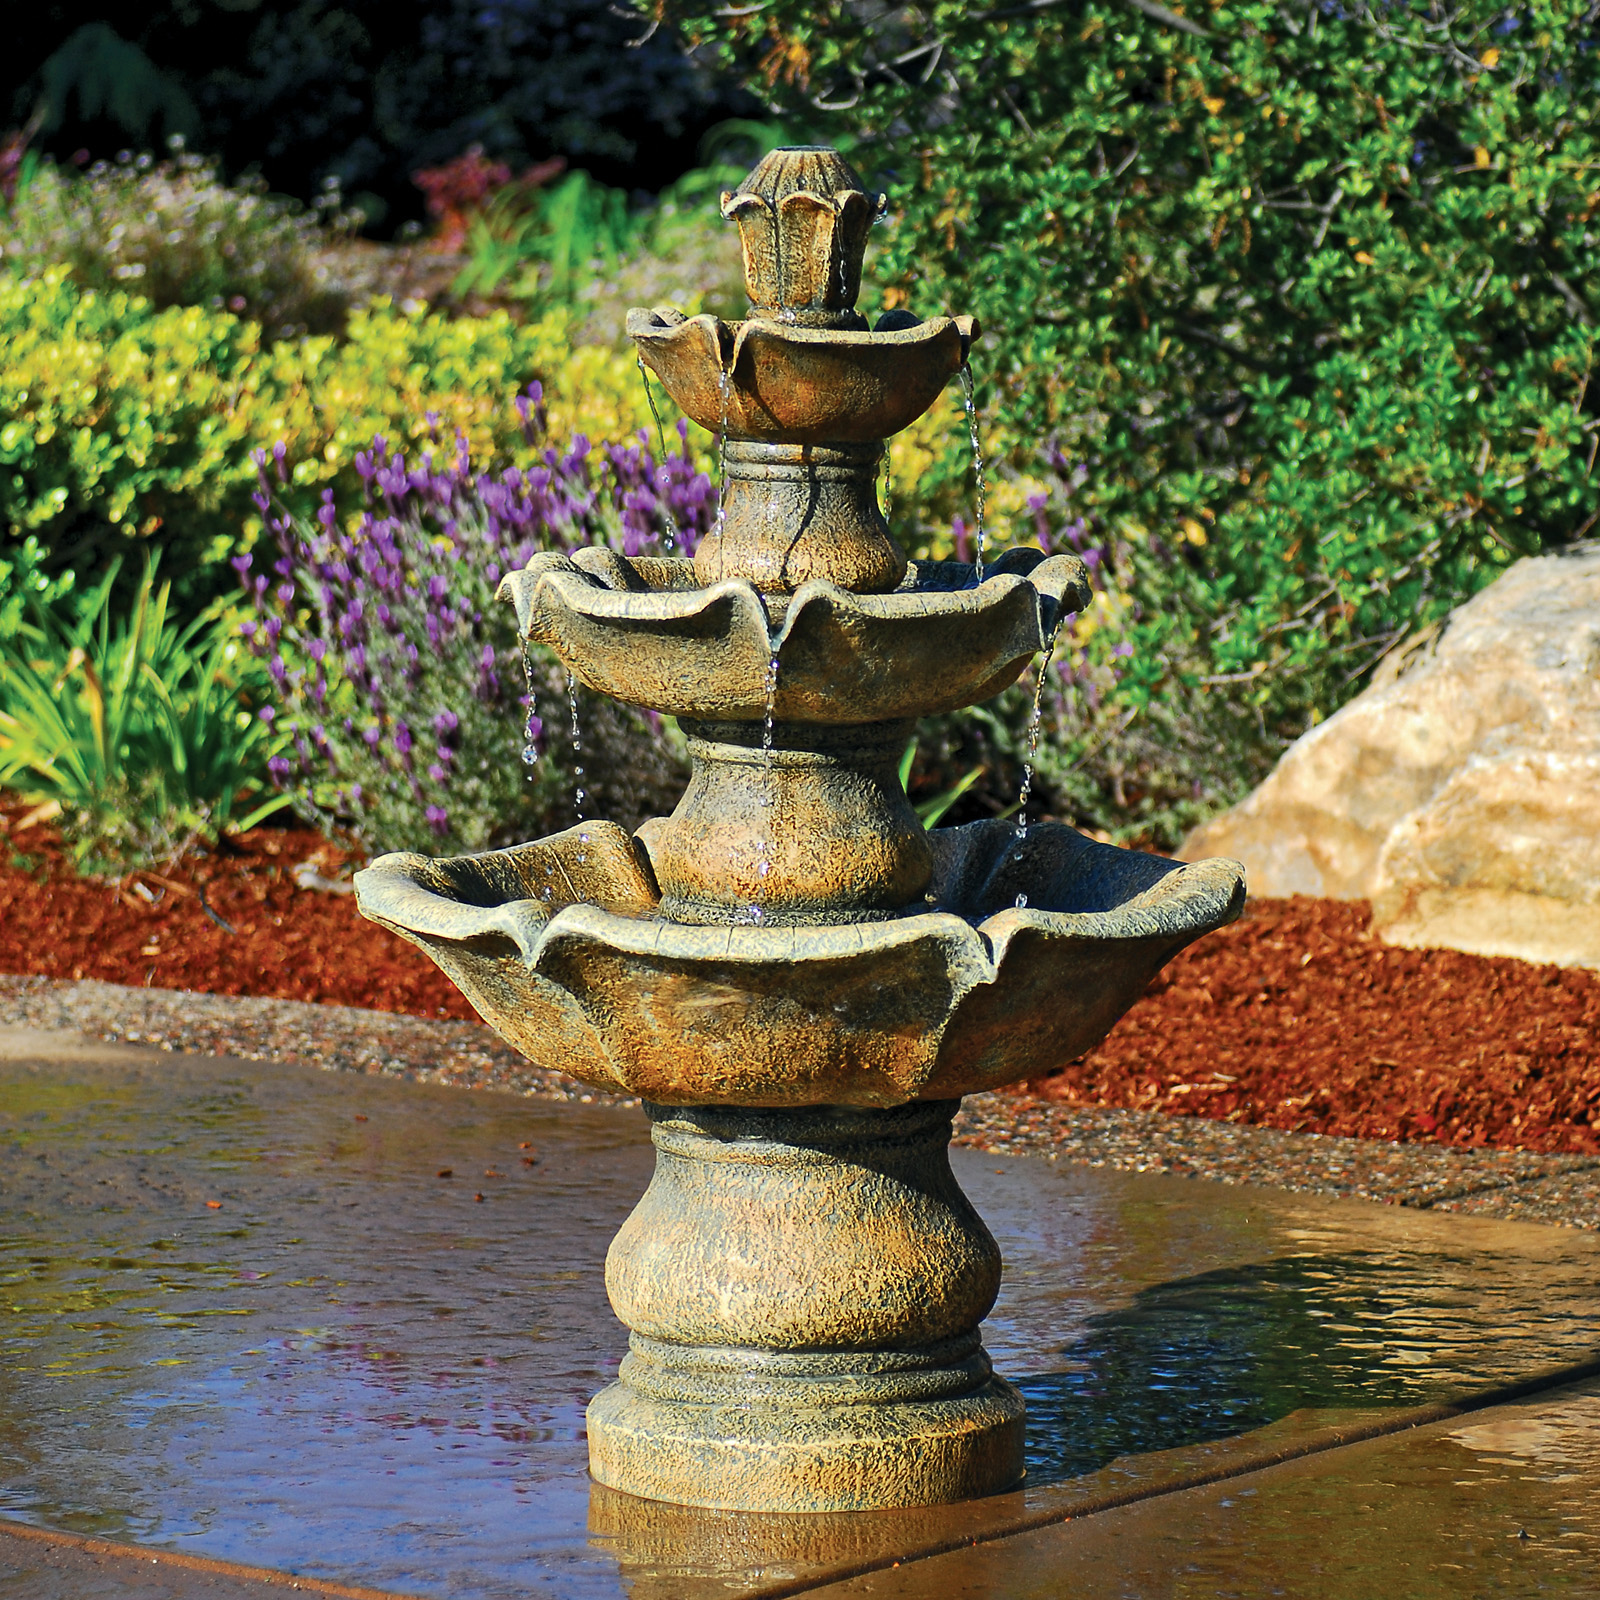 Types Of Fountains With Types Of Fountains.